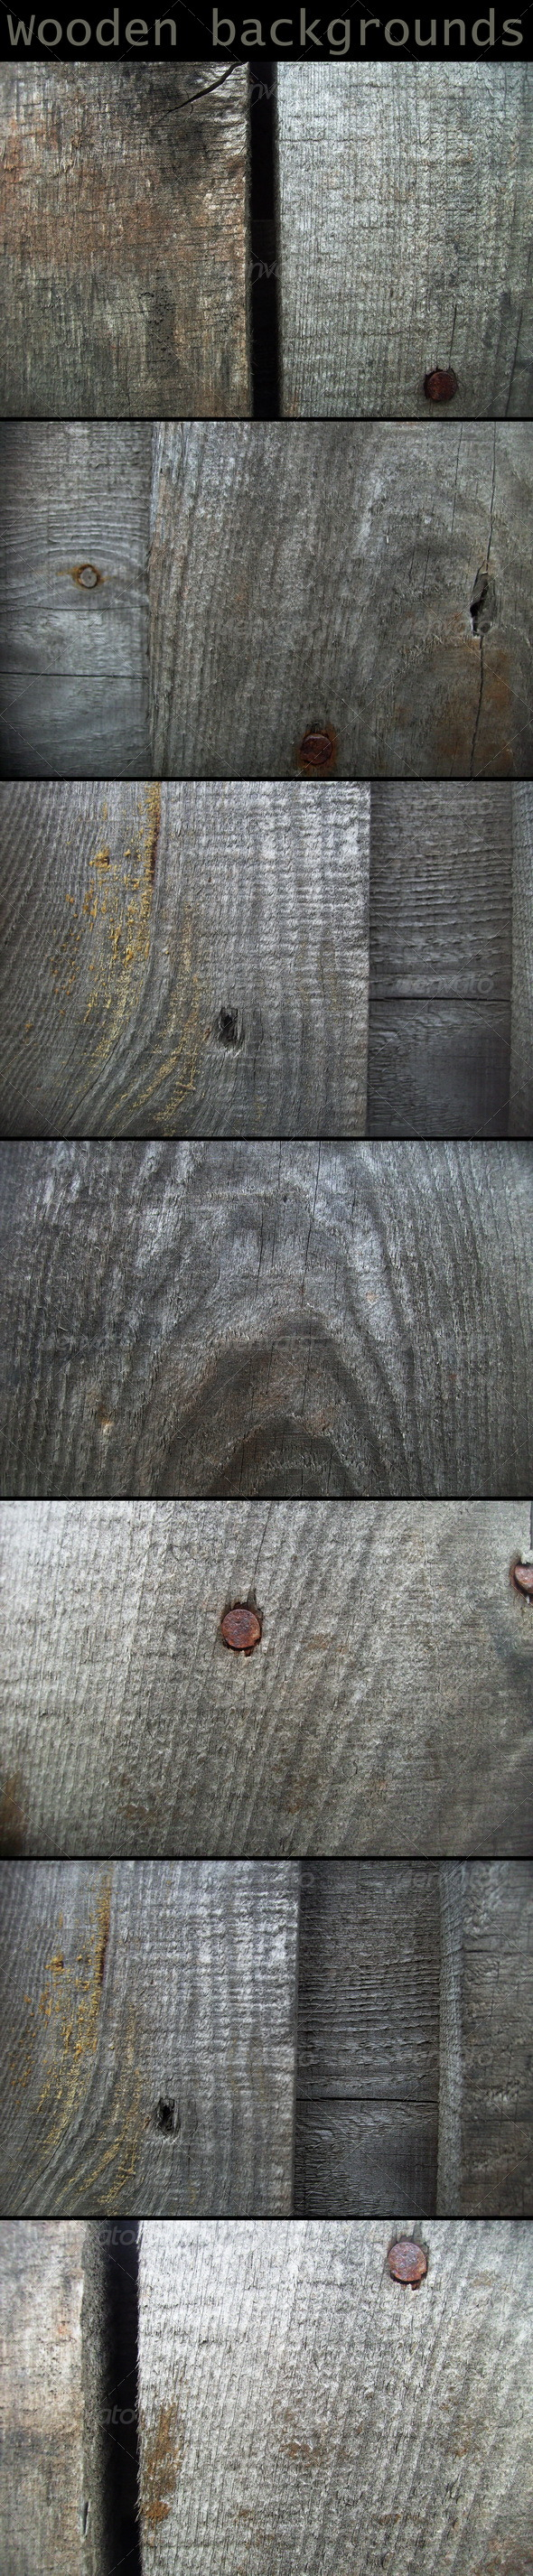 Wooden backgrounds - Wood Textures